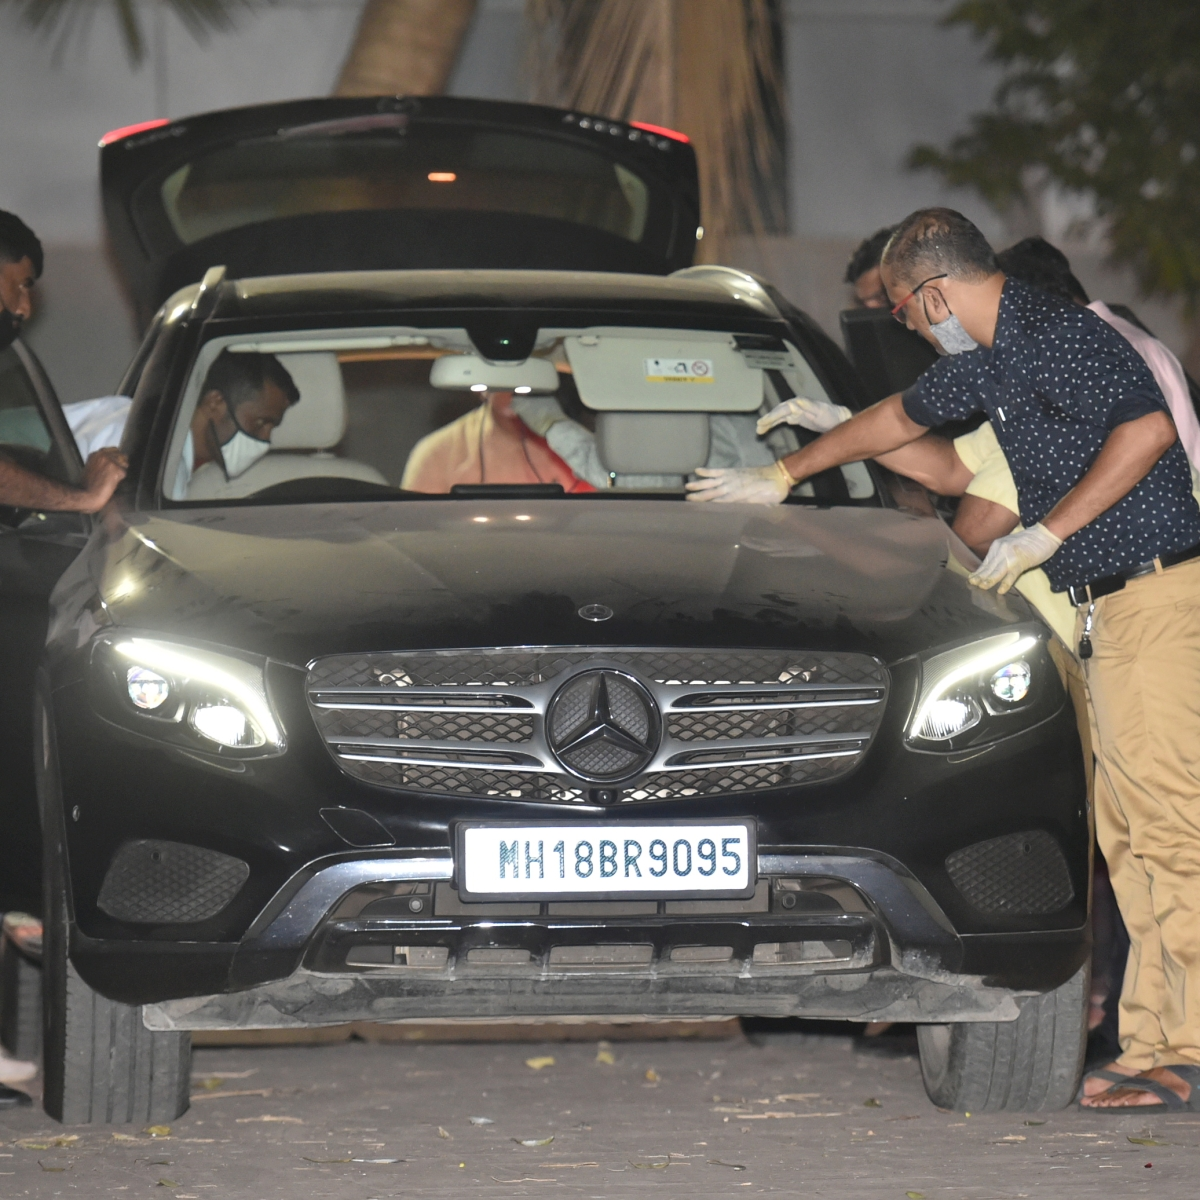 Antilia bomb scare: NIA seizes Mercedes car used by Sachin Vaze, recovers Rs 5 lakh from vehicle